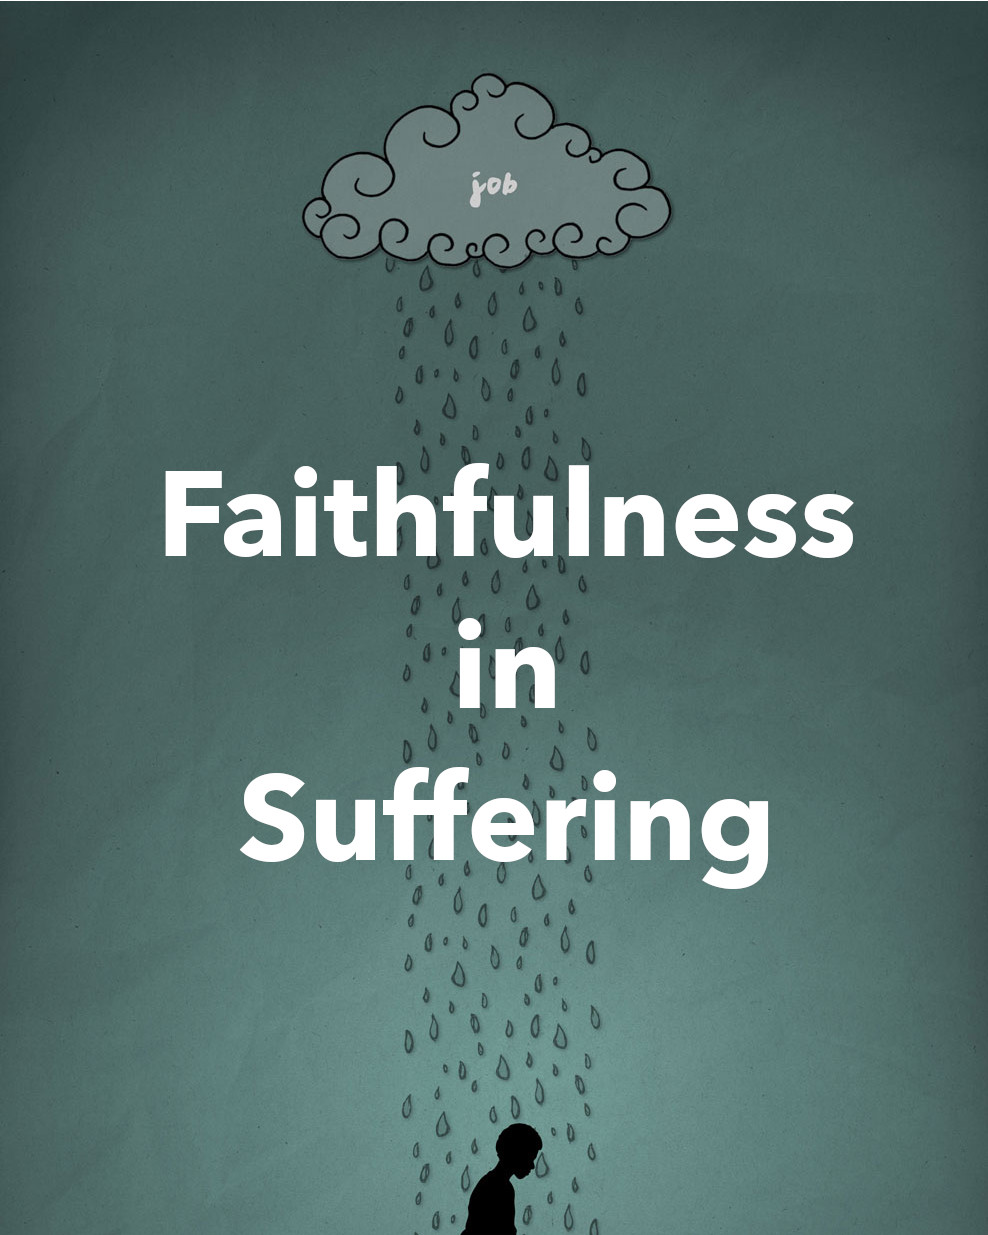 Faithfulness in Suffering